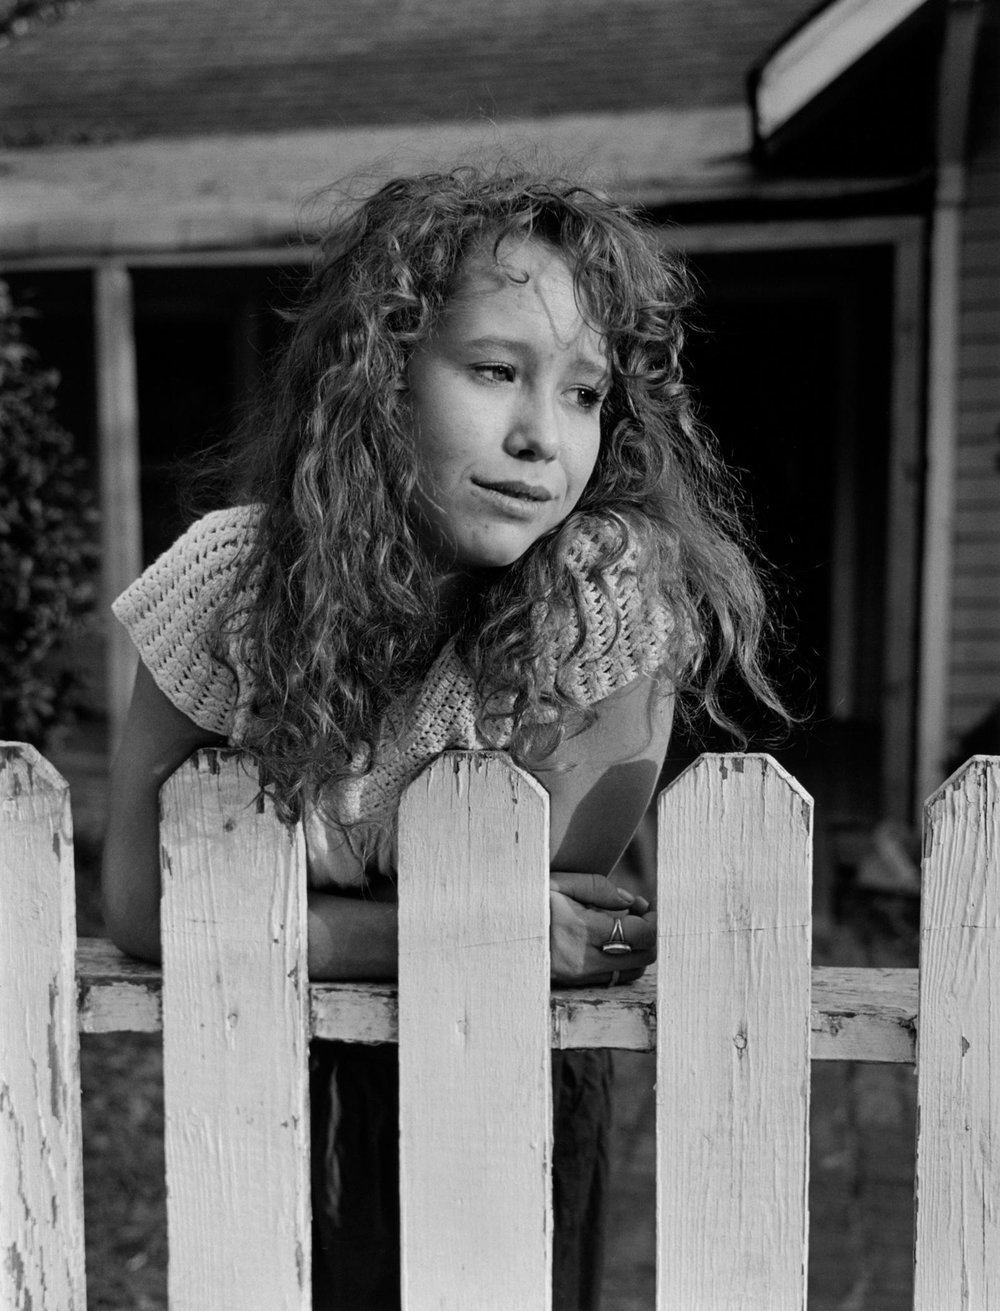 Maia, Knoxville, 1991. Gelatin silver print. © Mark Steinmetz, Courtesy of the Artist and Yancey Richardson Gallery